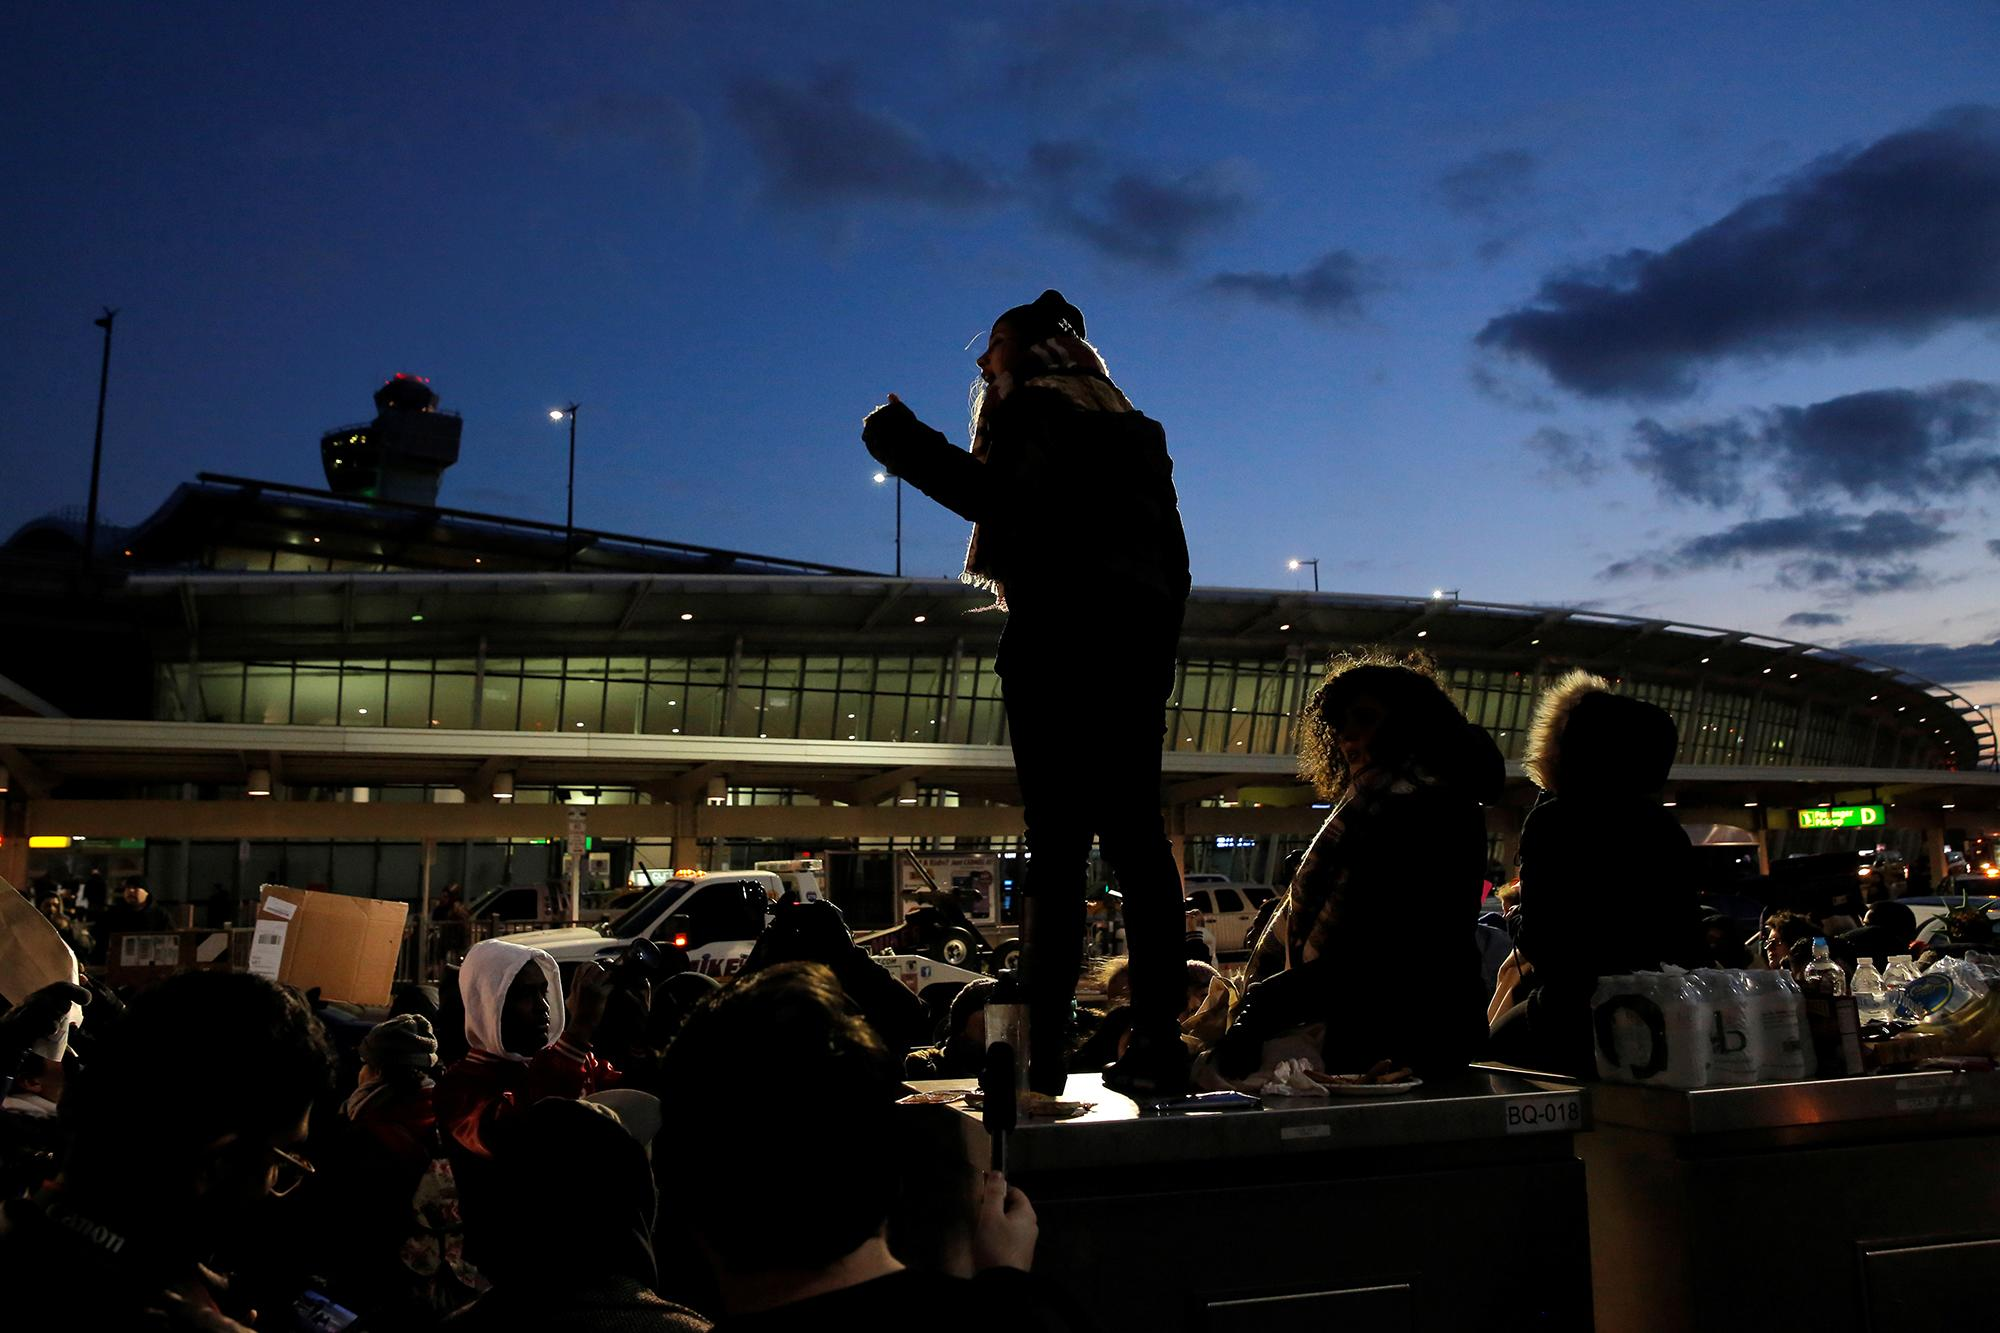 <p>People gather at Terminal 4 during a protest against Donald Trump's travel ban at John F. Kennedy International Airport in Queens, New York on Jan. 29, 2017. (REUTERS/Andrew Kelly) </p>